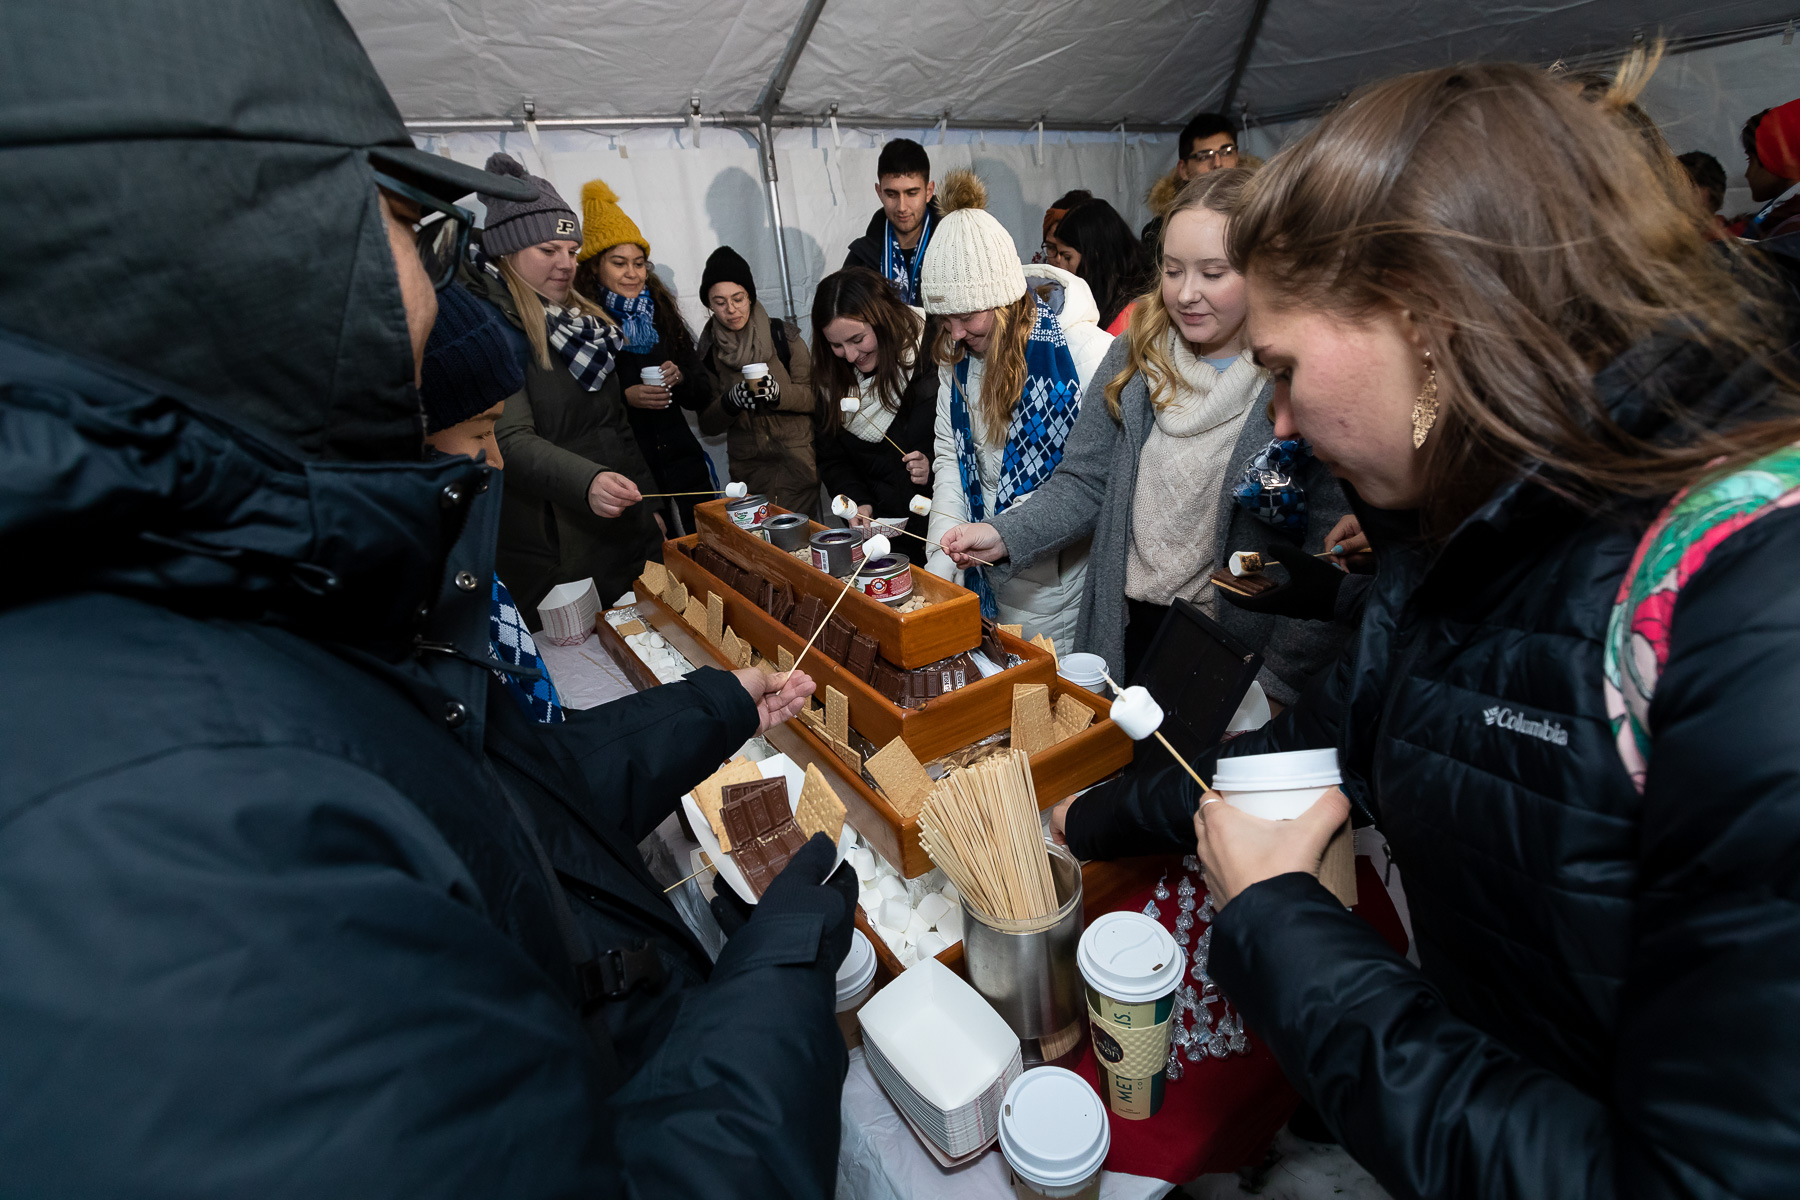 A s'mores roasting tent was available to chilly students during the second-annual Tree Lighting Ceremony. (DePaul University/Jeff Carrion)